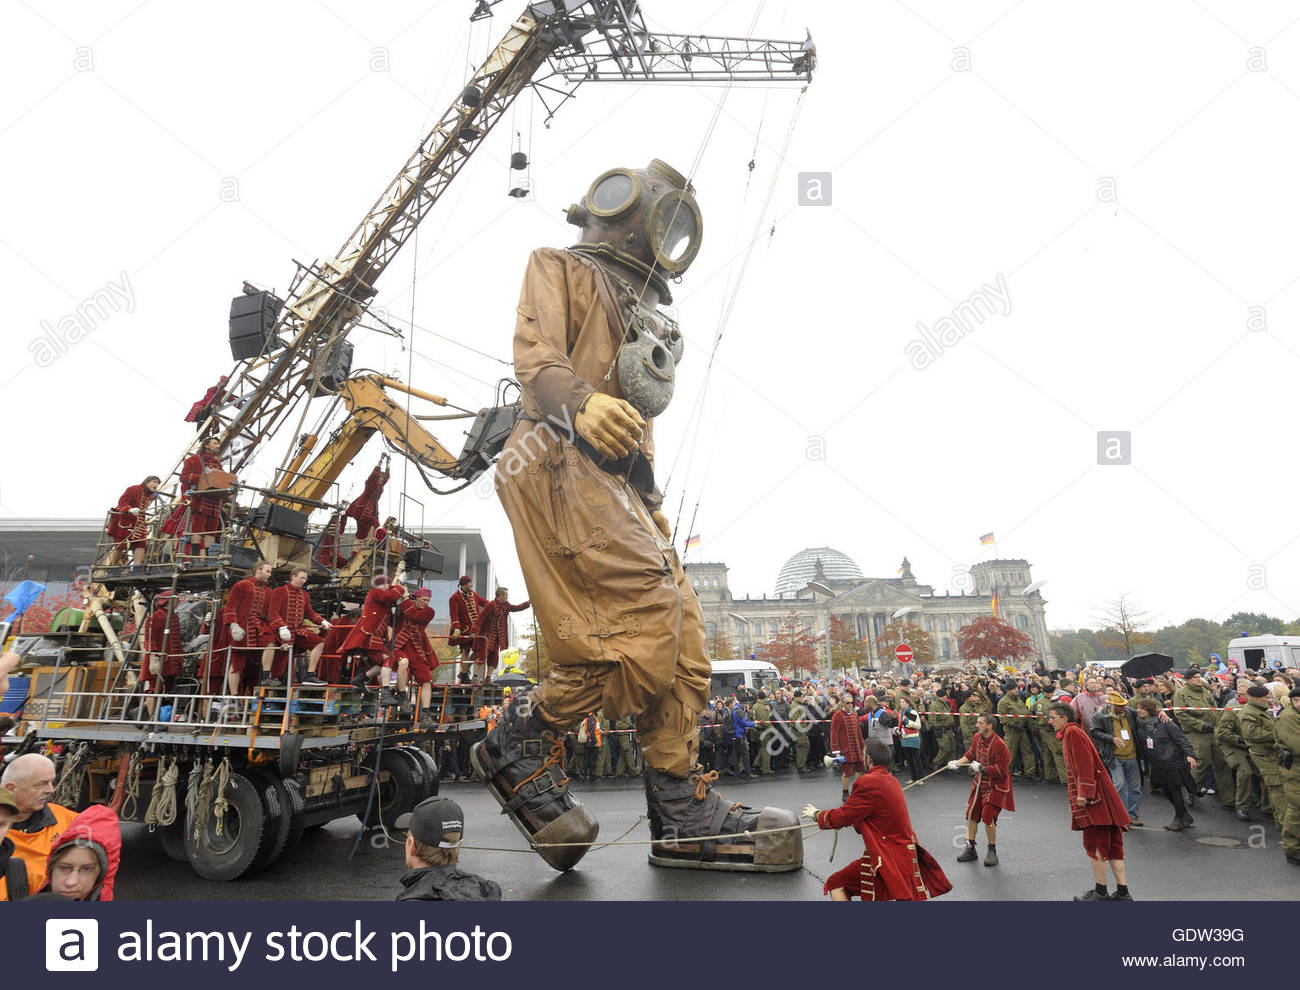 'The Berlin Reunion' narrated by Royal de Luxe - Stock Image